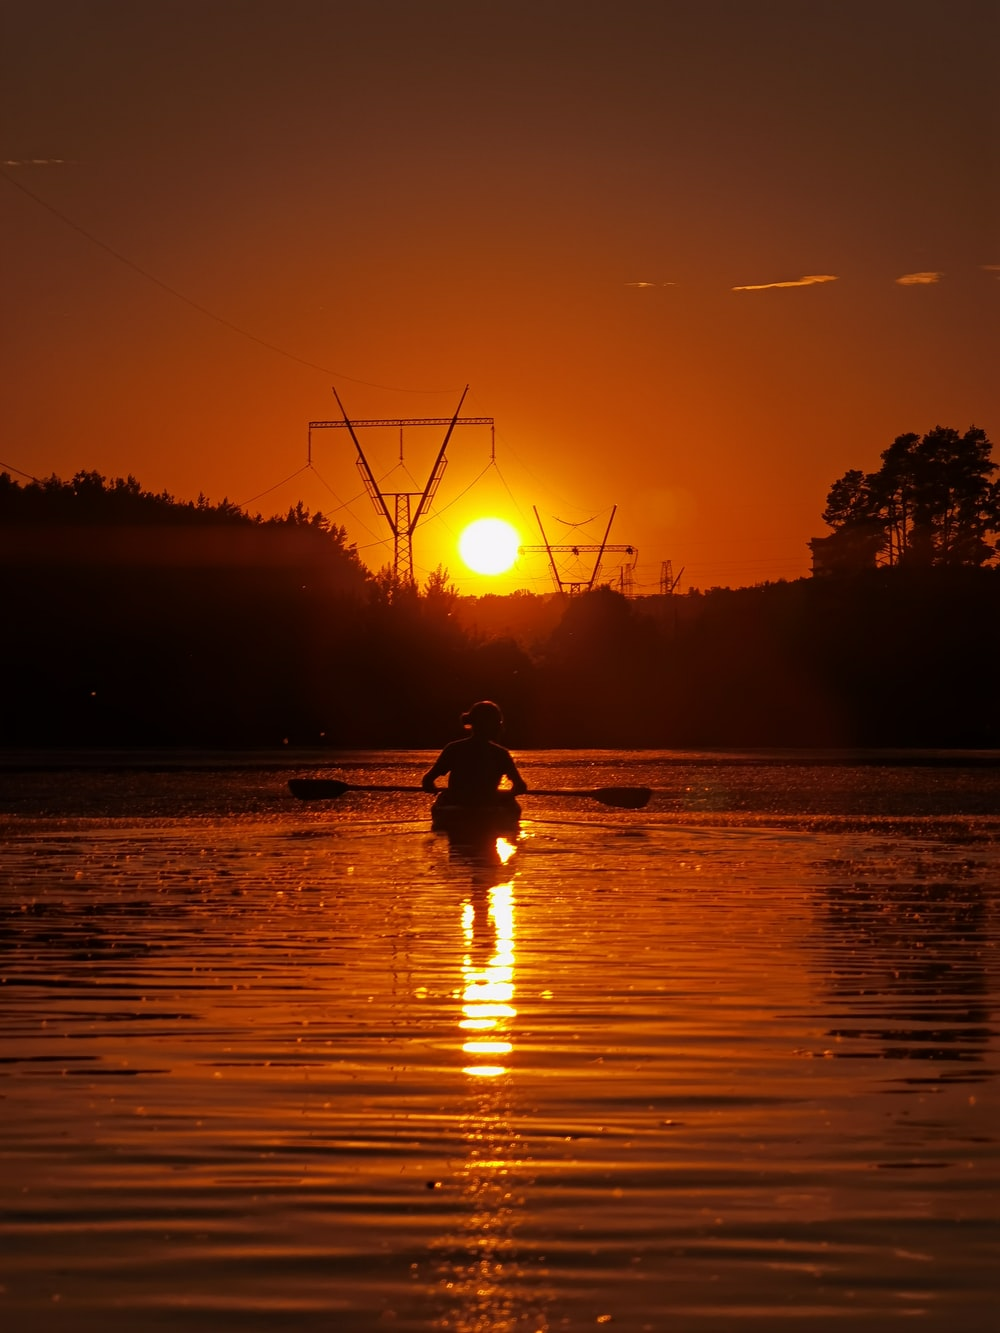 silhouette of person riding on horse on water during sunset